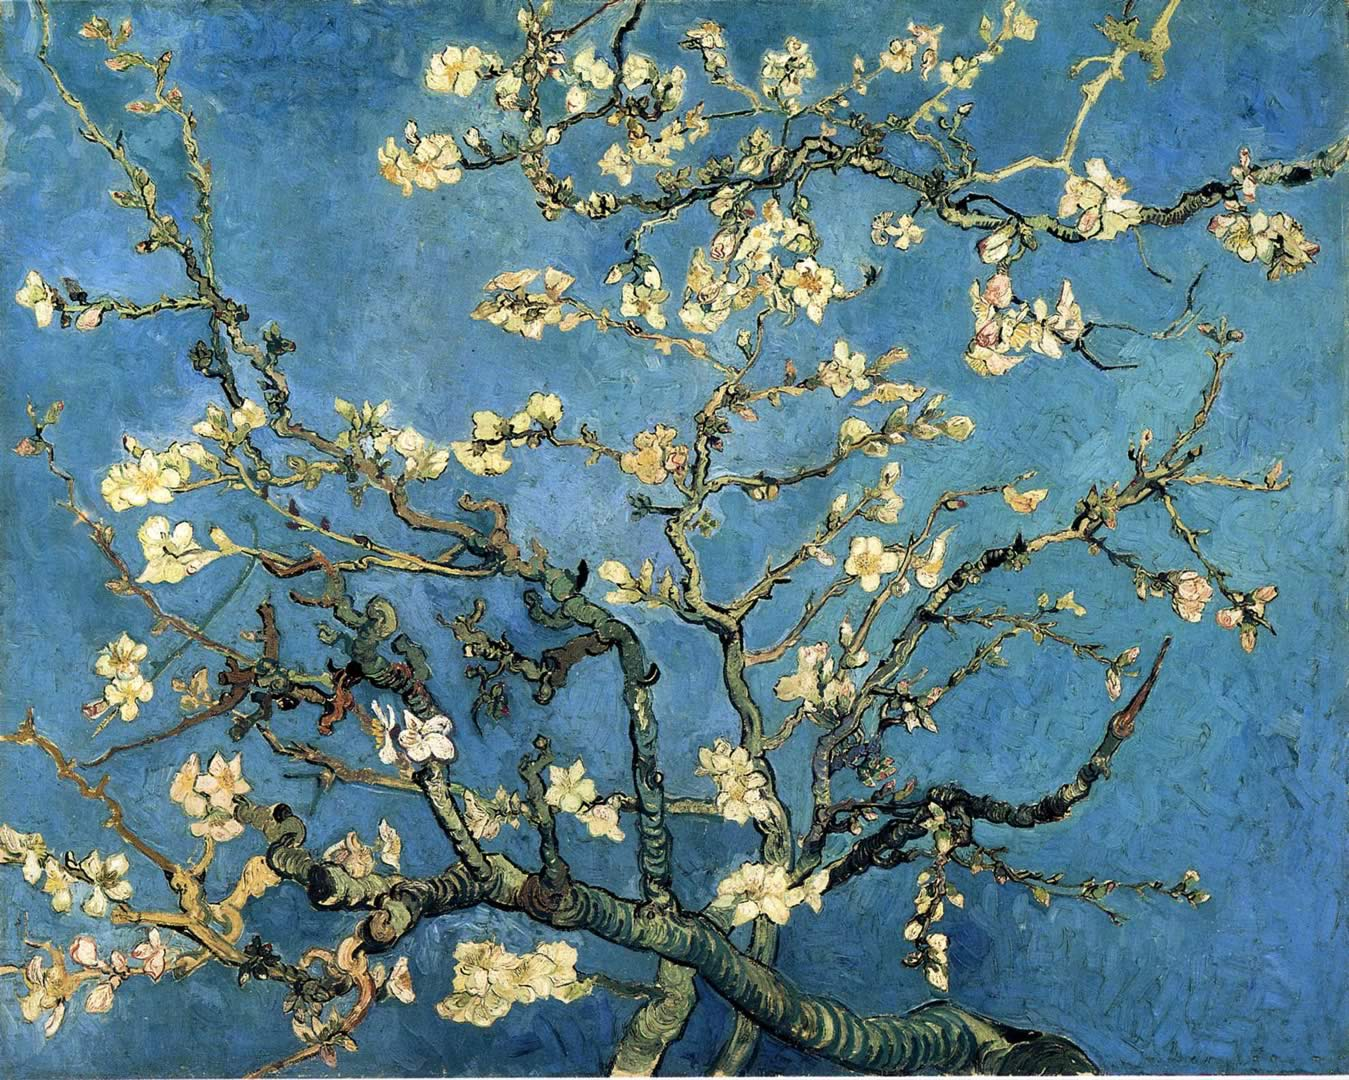 Cute Monkey Wallpapers For Mobile Download Van Gogh Almond Blossom Wallpaper Gallery